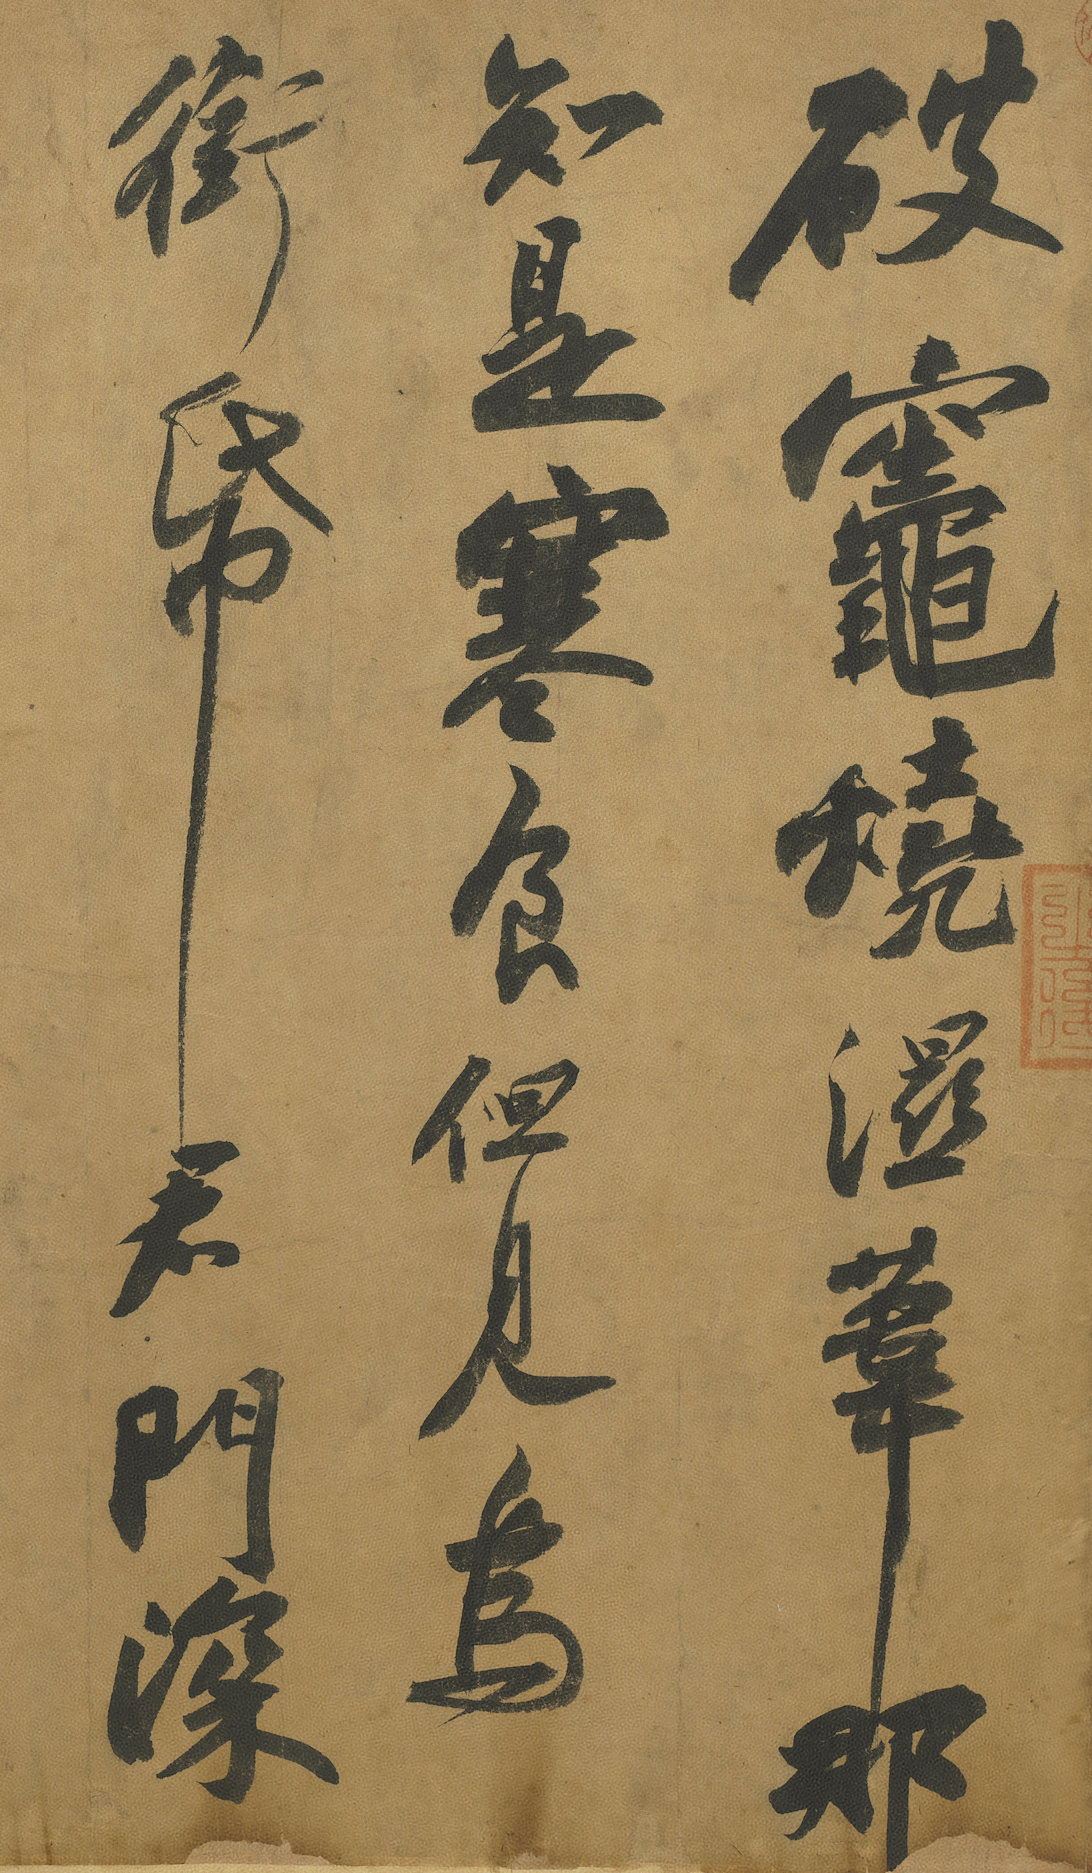 Horizontal and vertical writing in East Asian scripts - Wikipedia